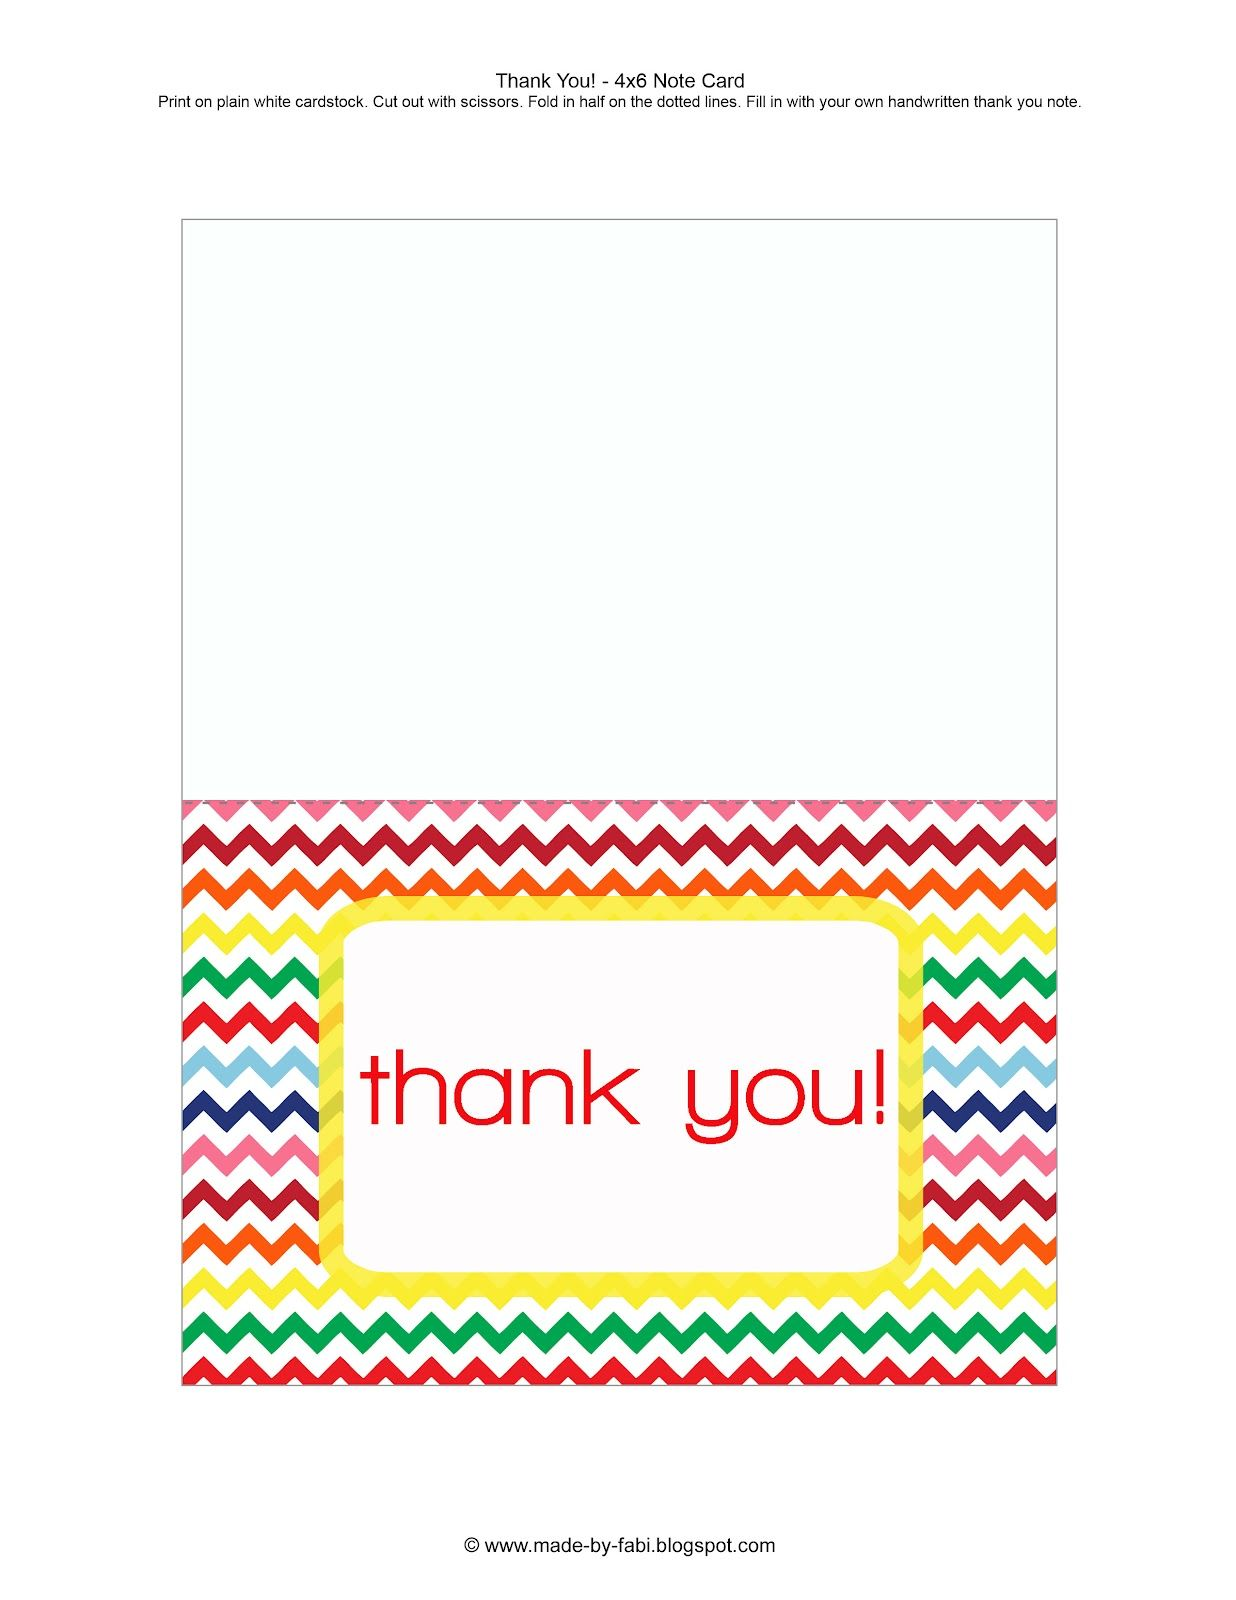 FreePrintableThankYouCardsJpg   Cards And